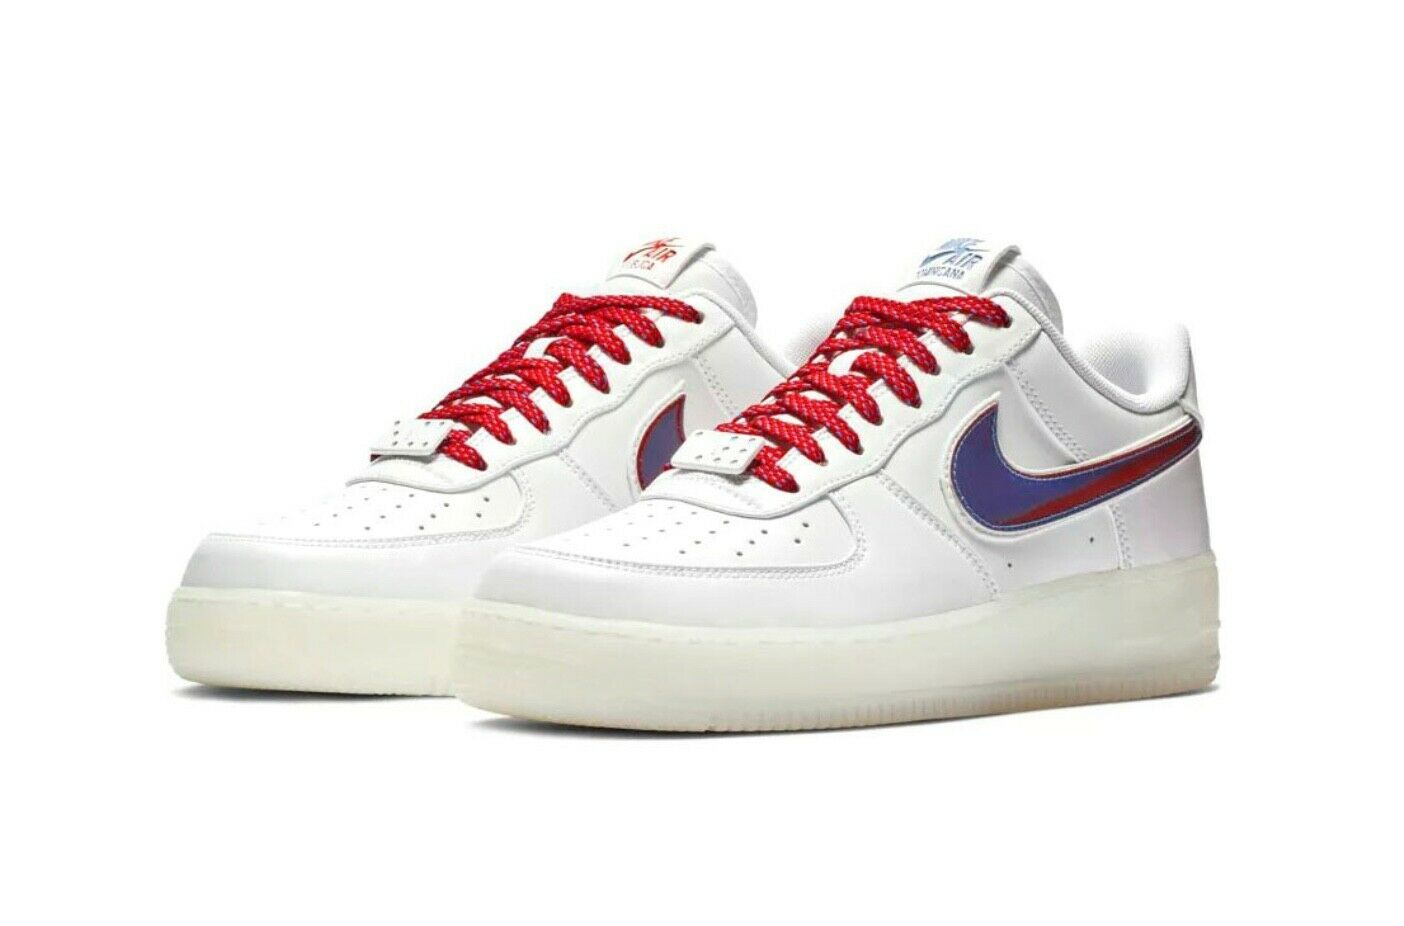 Size 10 US - Nike Air Force 1 low De Lo Mio EXCLUSIVE LIMITED RELEASE